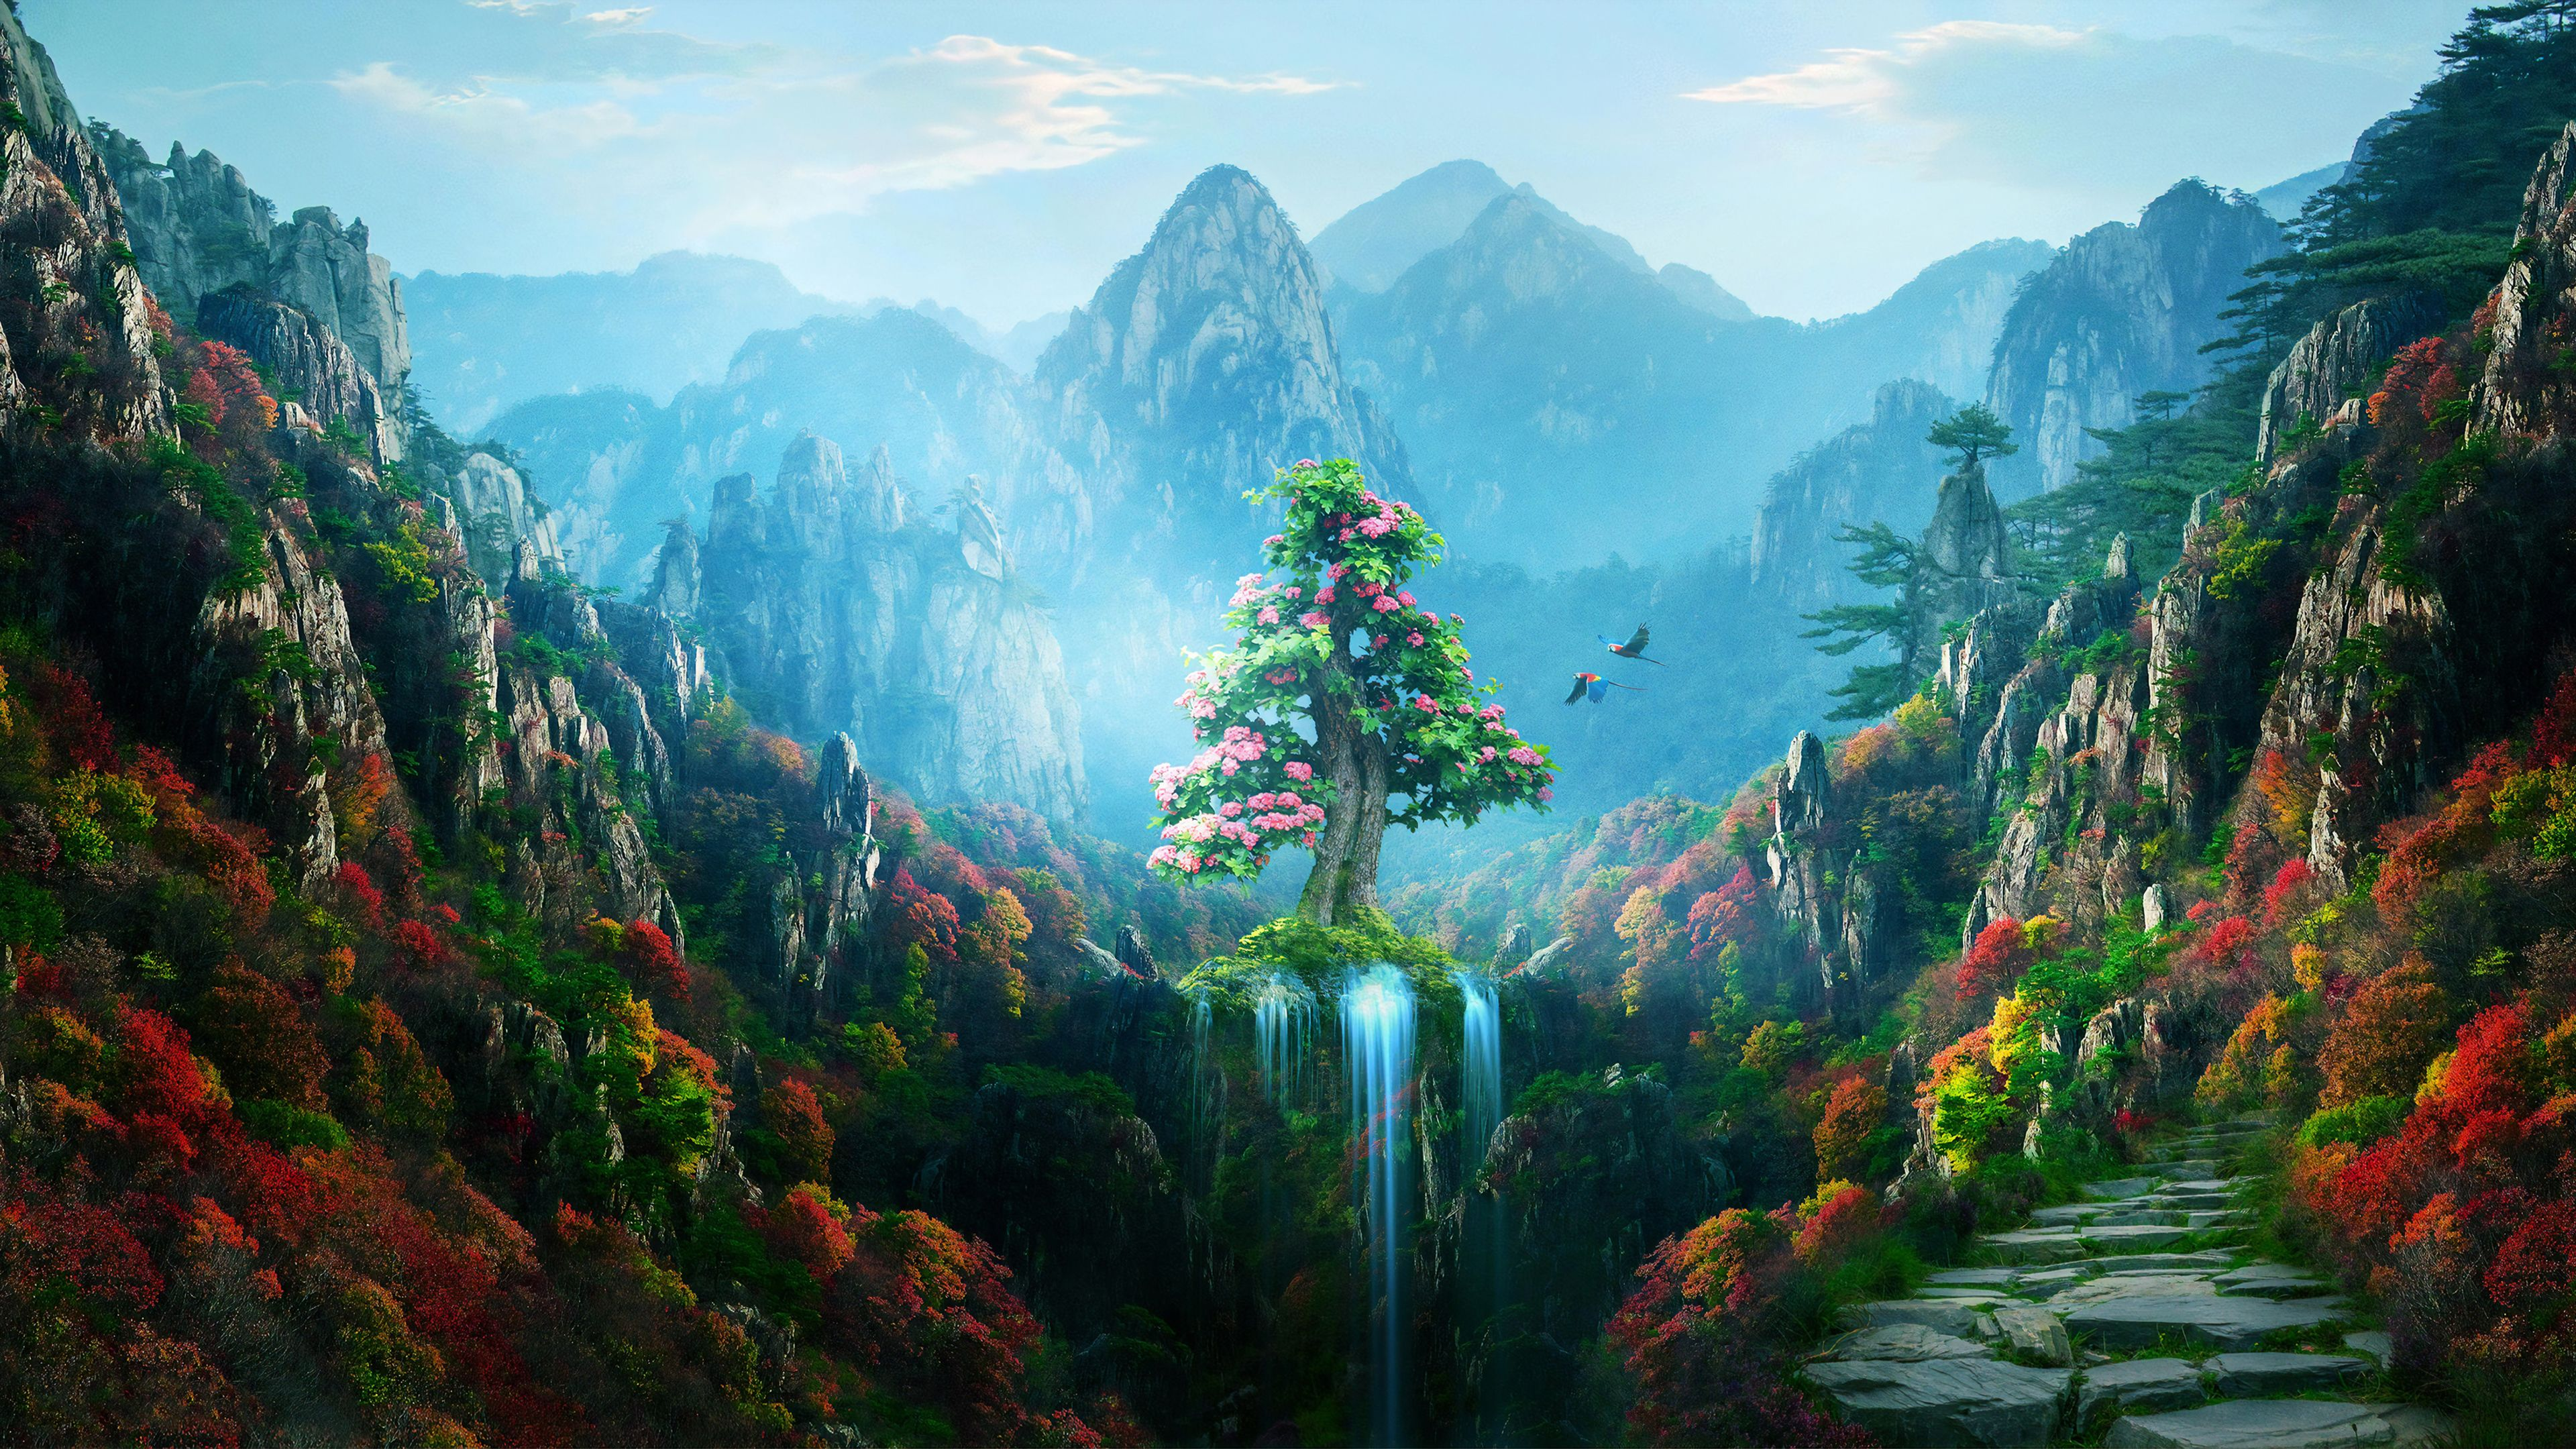 Spring Autumn Colorful Nature Magical Forest 4k Spring Wallpapers Parrot Wallpapers Nature Wallpapers M In 2020 Nature Wallpaper Colorful Wallpaper Spring Wallpaper